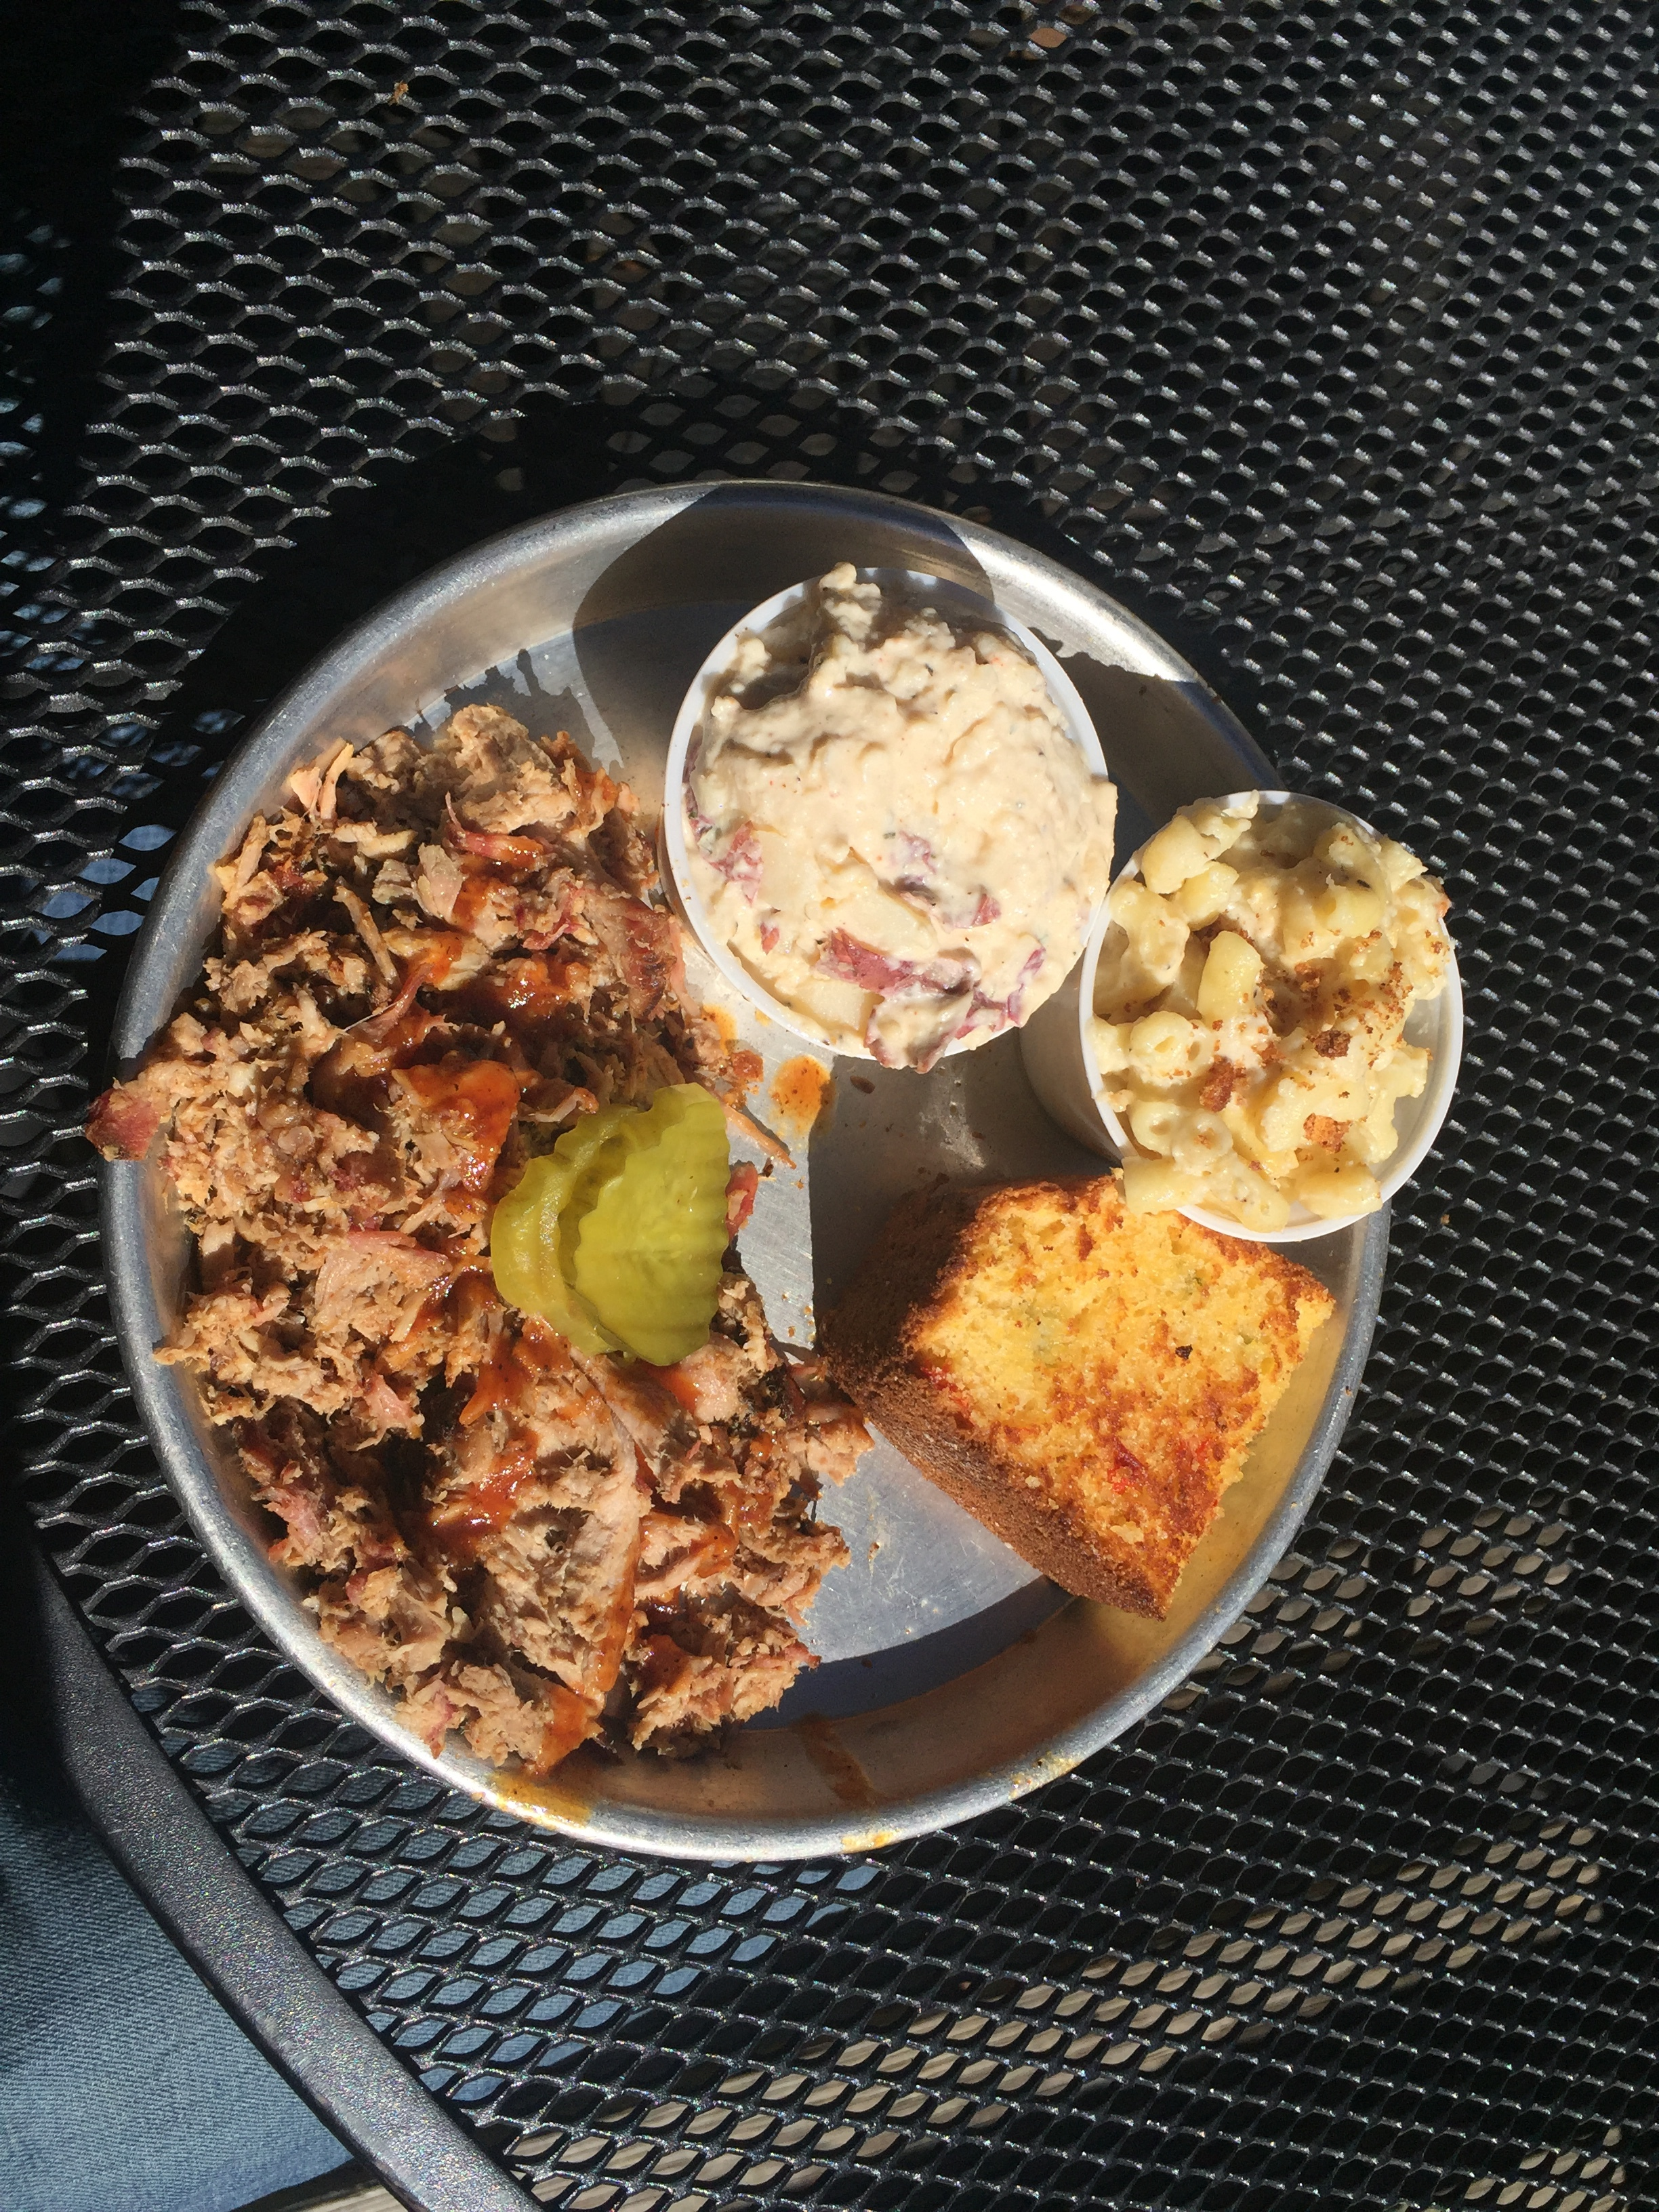 Pulled Pork, Potato Salad, Mac & Cheese, and Corn Bread from